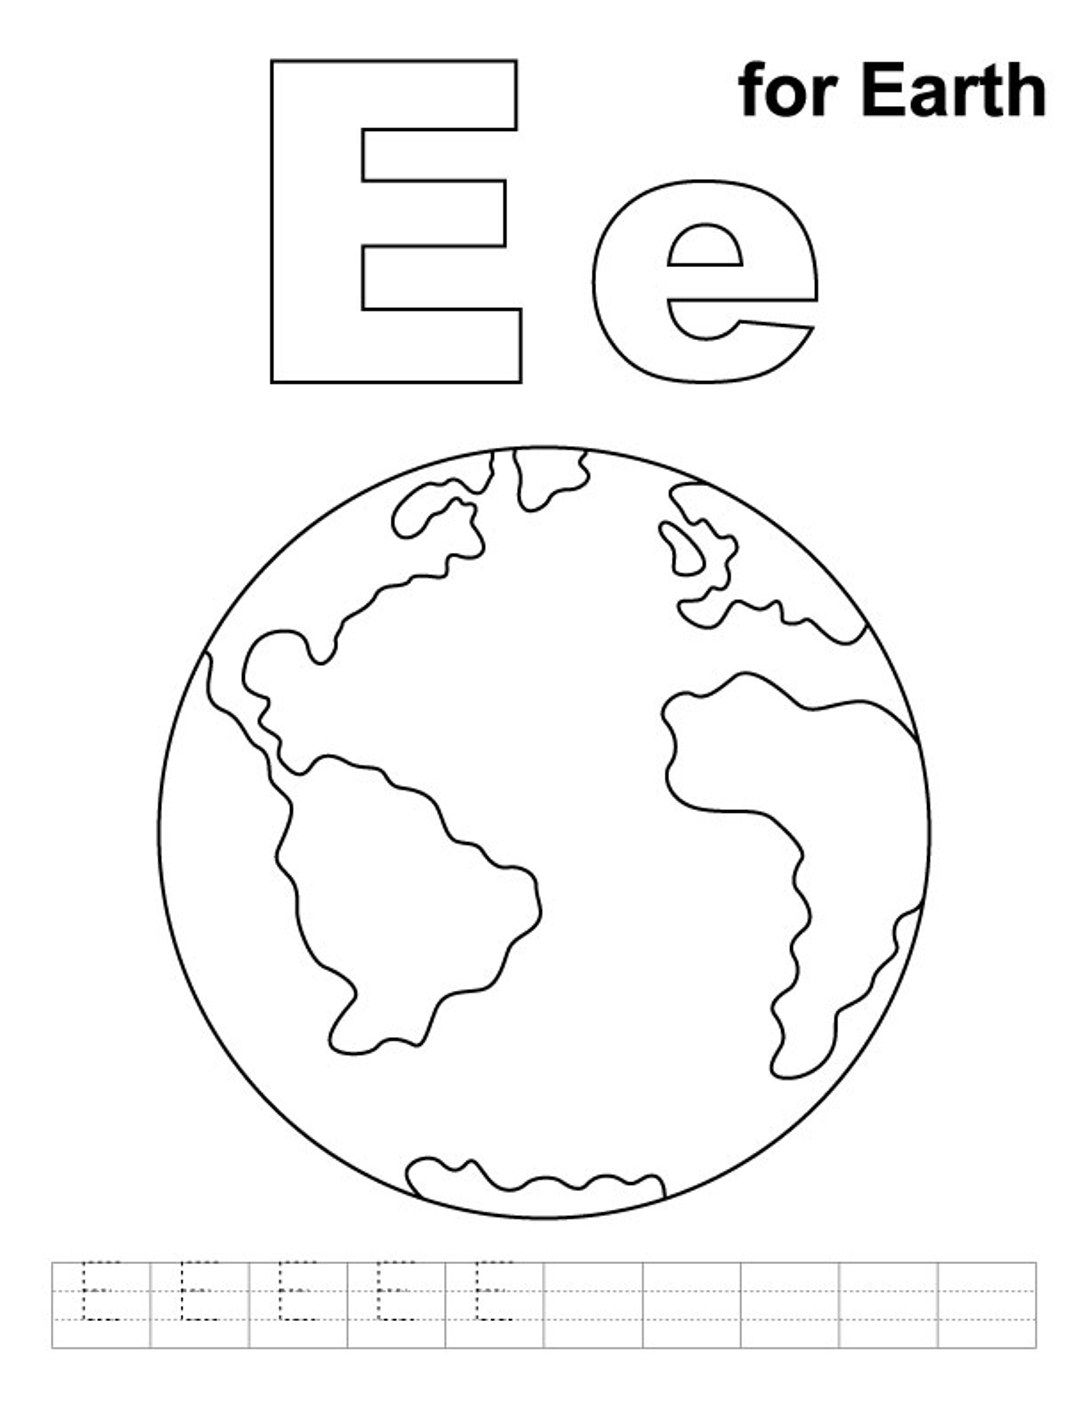 e is for earth coloring page letter e is for earth coloring page free printable earth is for page coloring e